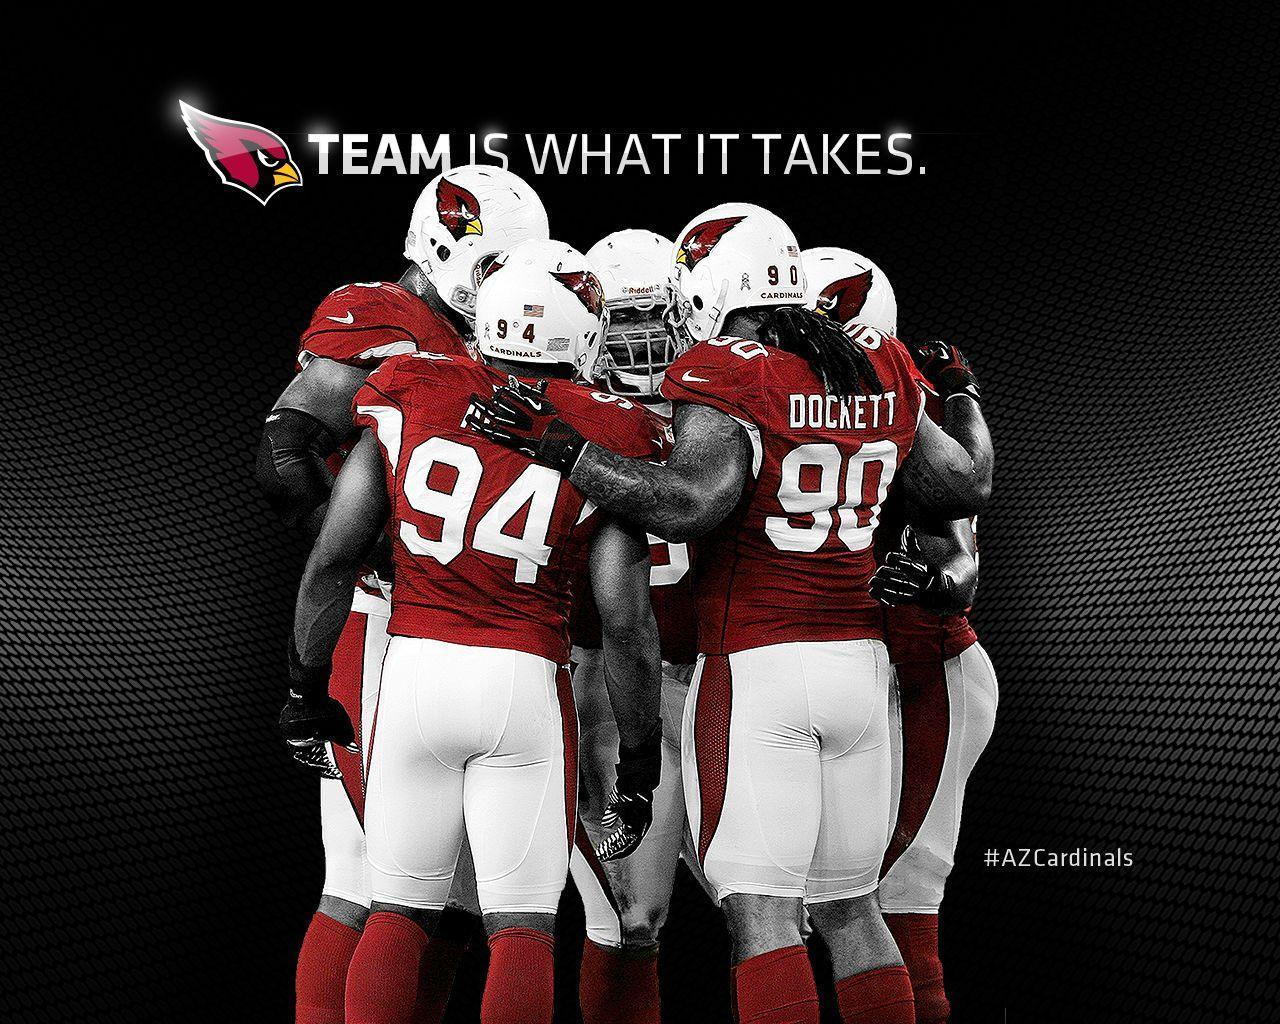 Arizona Cardinals HD Wallpaper - WallpaperSafari